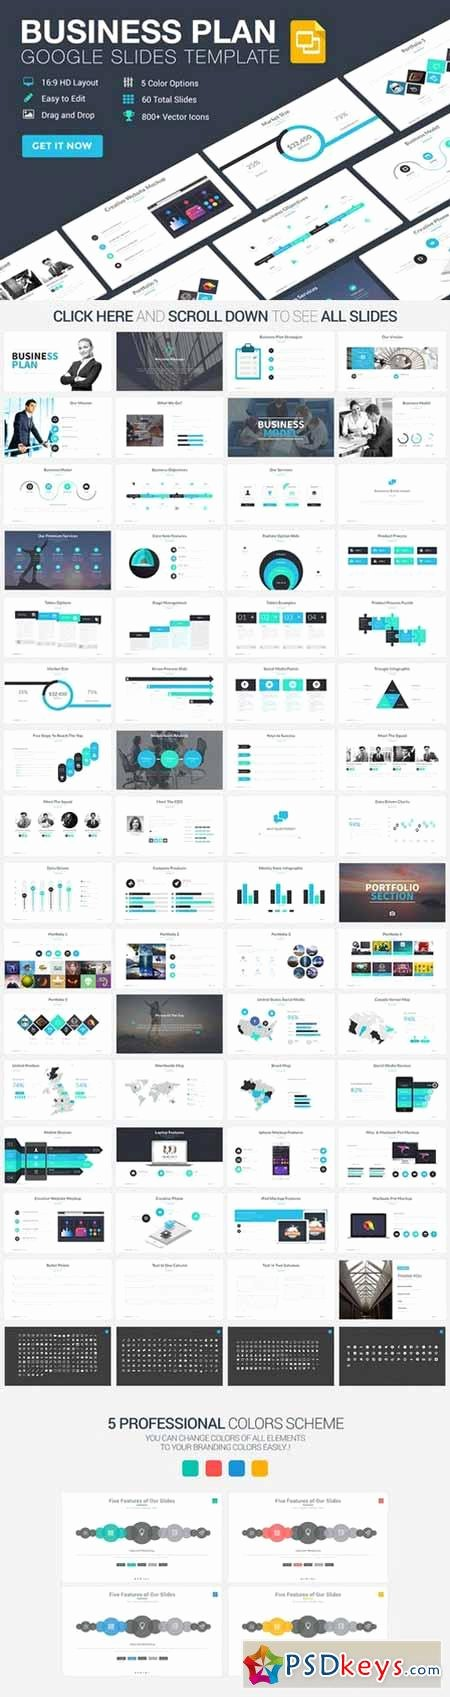 Google Business Plan Template Awesome Business Plan Google Slides Template Free